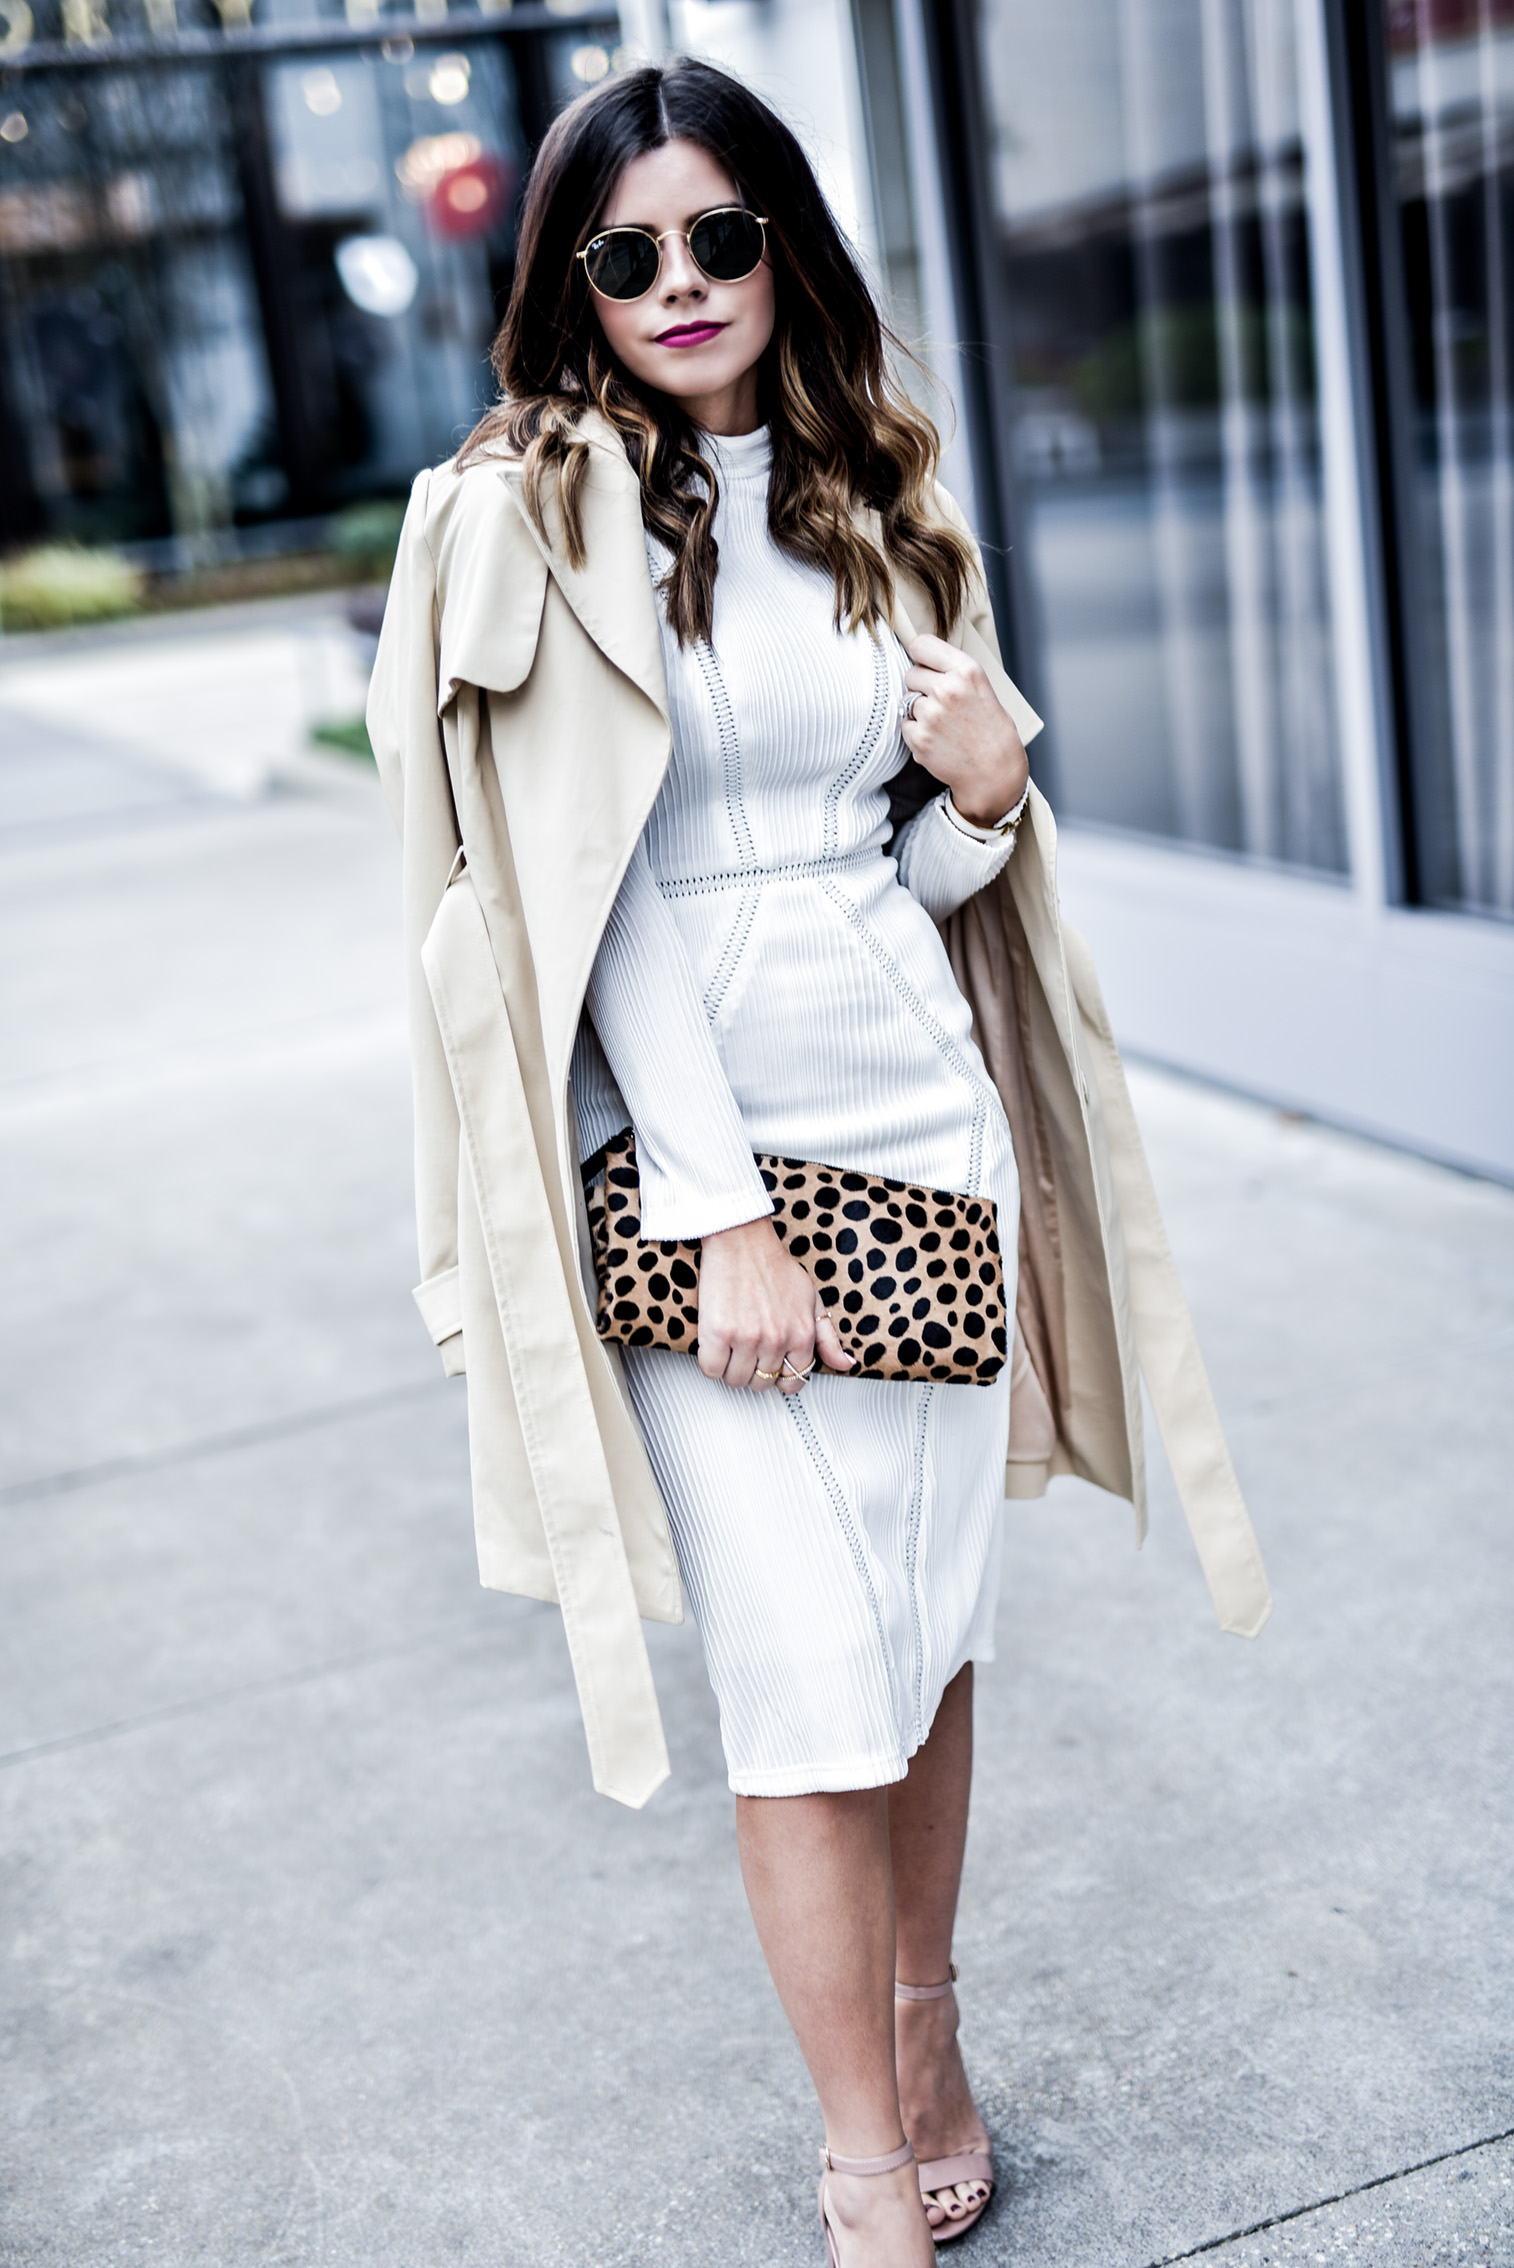 Tiffany Jais Houston fashion and lifestyle blogger of Flaunt and Center wearing a white dress by NA-KD fashion and a leopard clutch, click to read more | Women's fashion trend